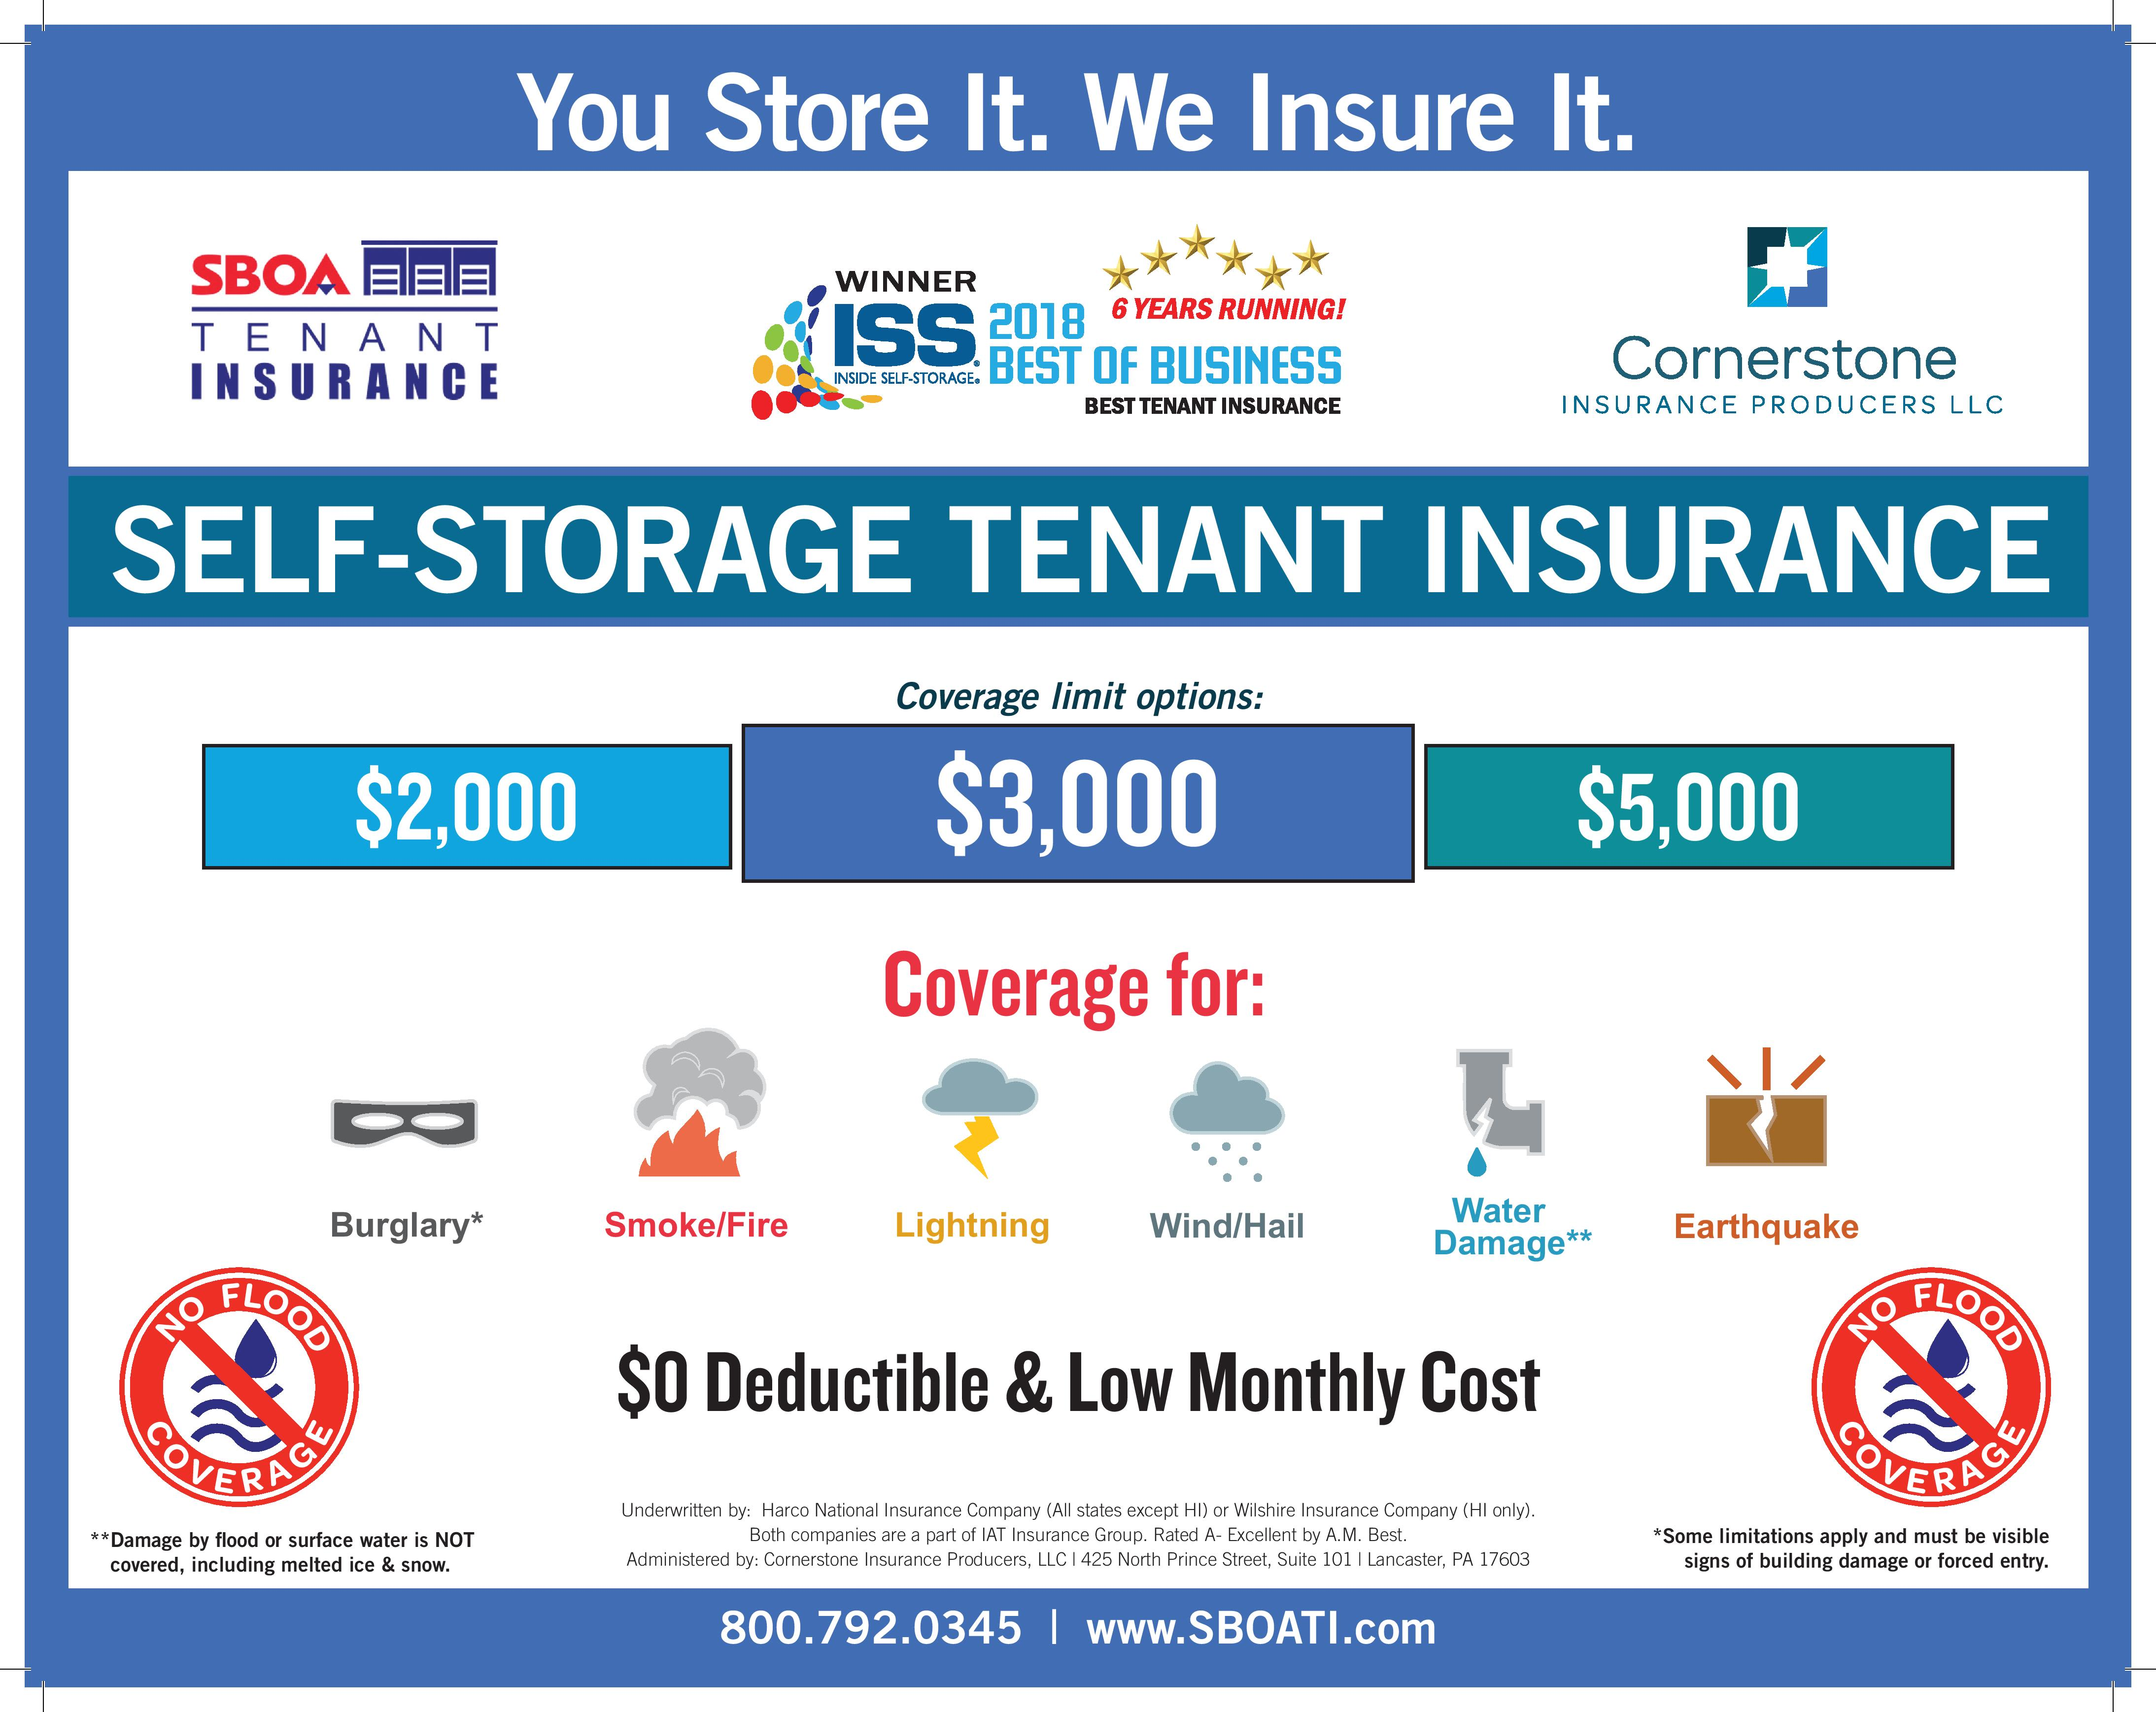 SBOA Tenant Insurance from Summit Self Storage in Akron, Ohio